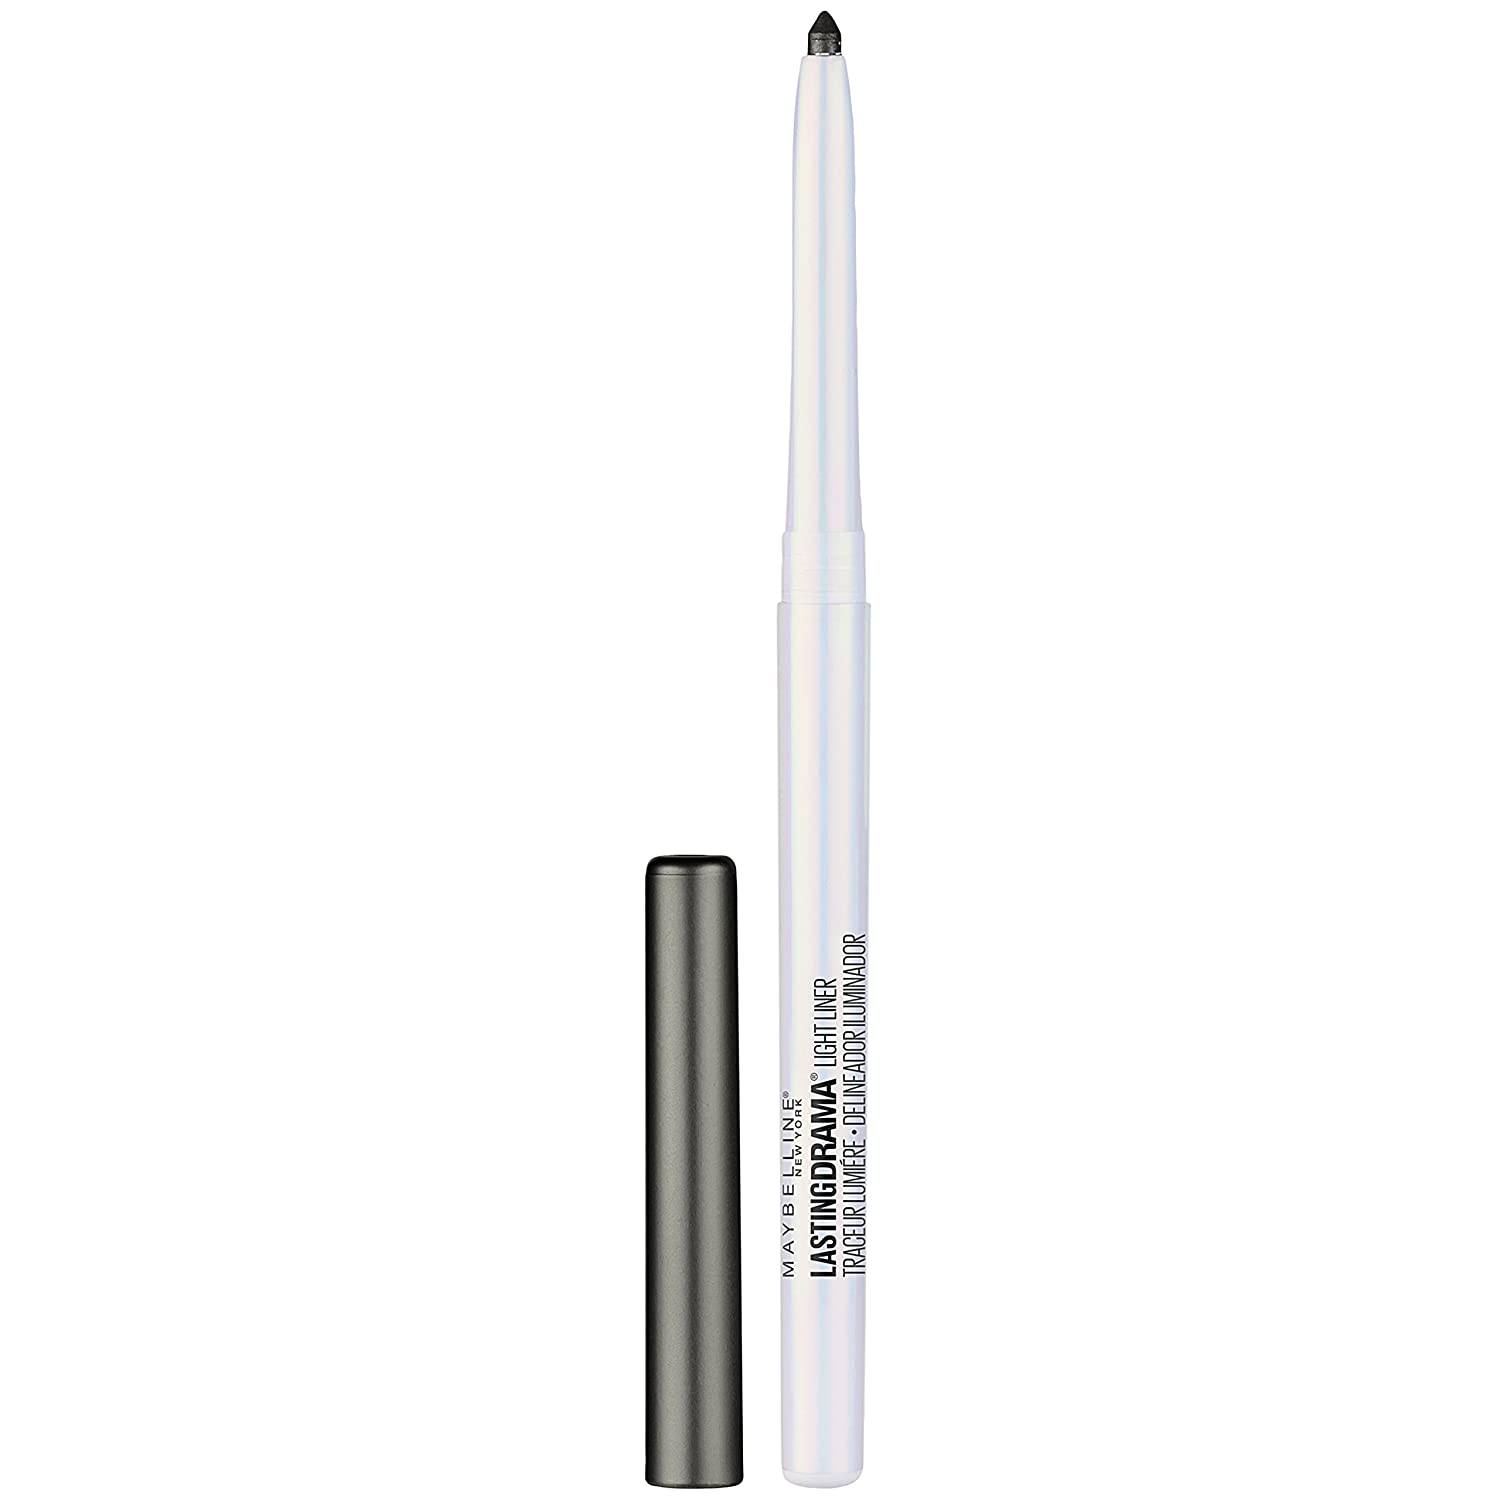 Maybelline Lasting Drama Light Eyeliner (Twinkle Black) $2.90 w/ S&S + Free Shipping w/ Amazon Prime or Orders $25+